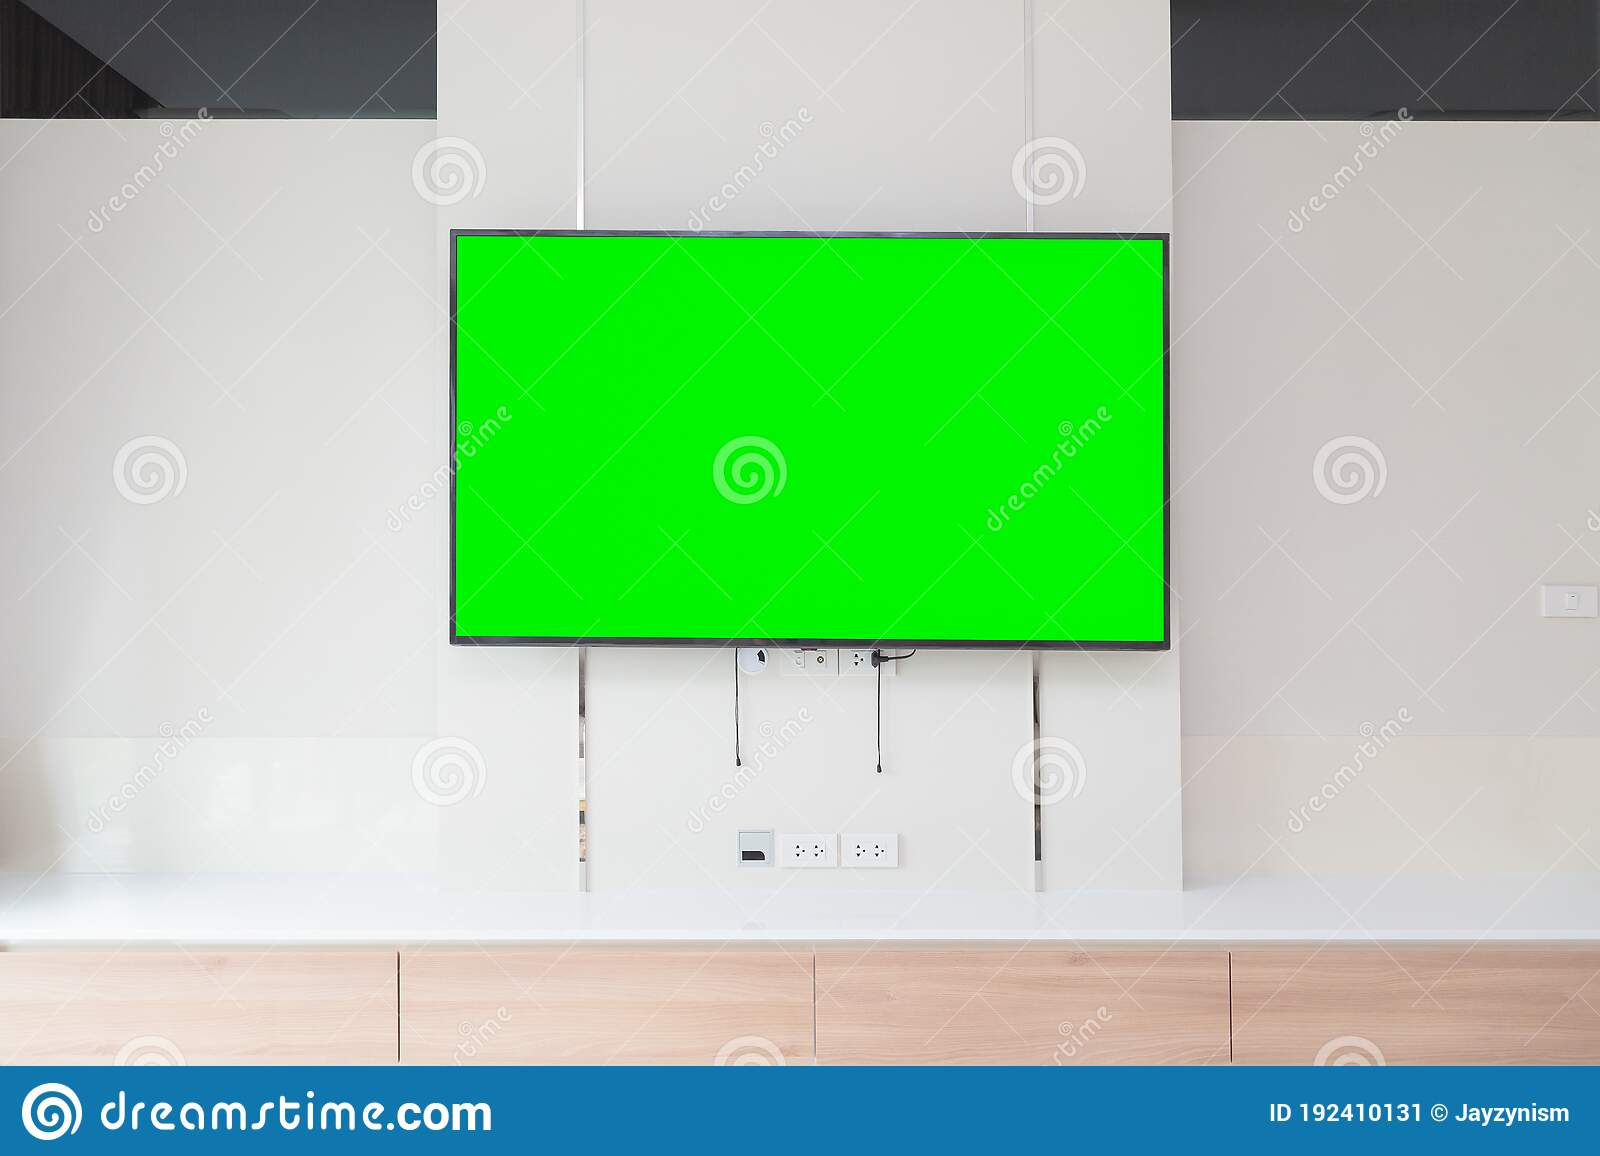 191 Green Screen Tv Living Room Photos Free Royalty Free Stock Photos From Dreamstime